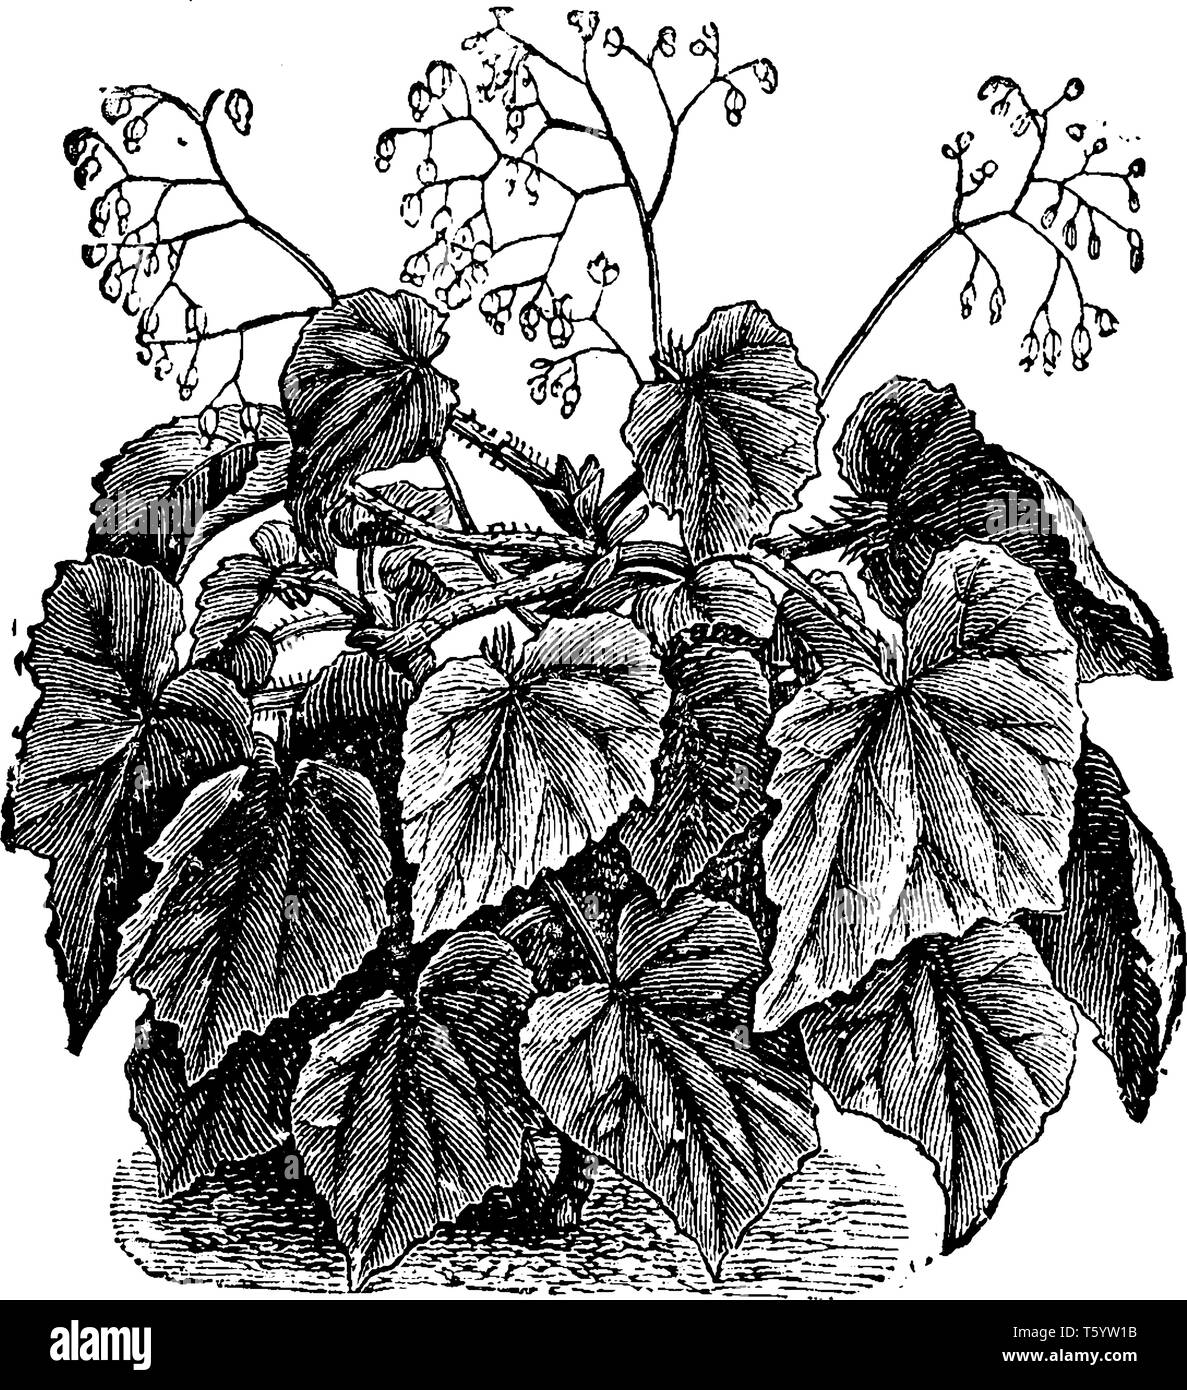 The leaves rose in cluster, the leaves stalk is hairy. Flowers are tiny growing on top, vintage line drawing or engraving illustration. - Stock Image